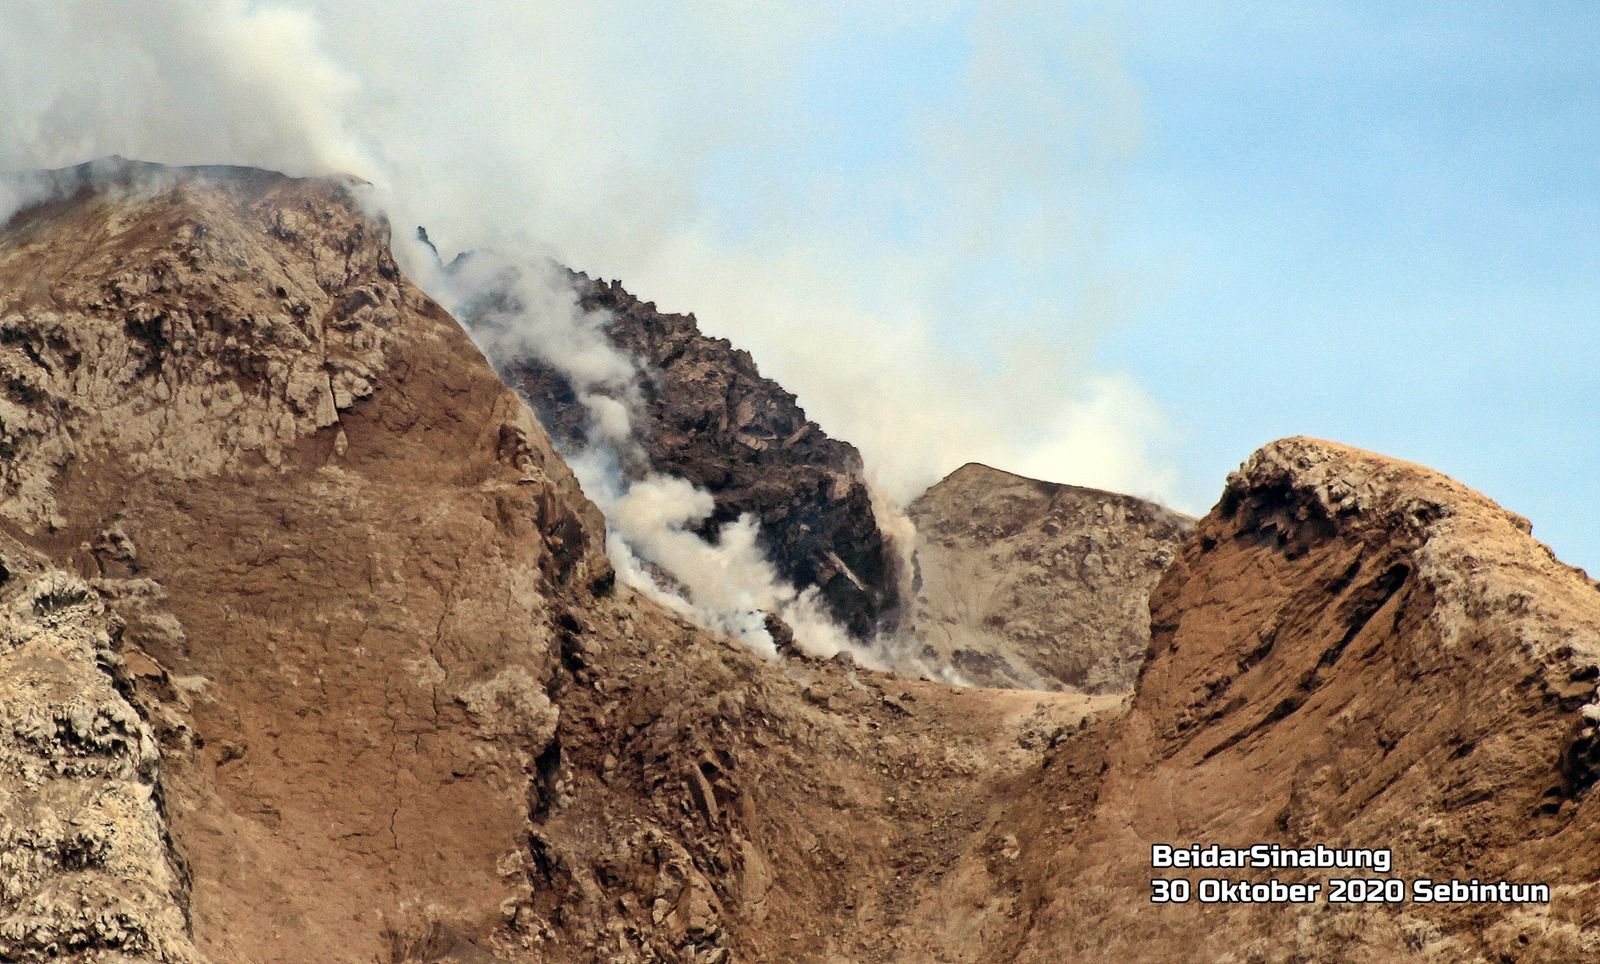 Sinabung - the summit dome and the faults - photo 30.10.2020 Firdaus Surbakti / Beidar Sinabung